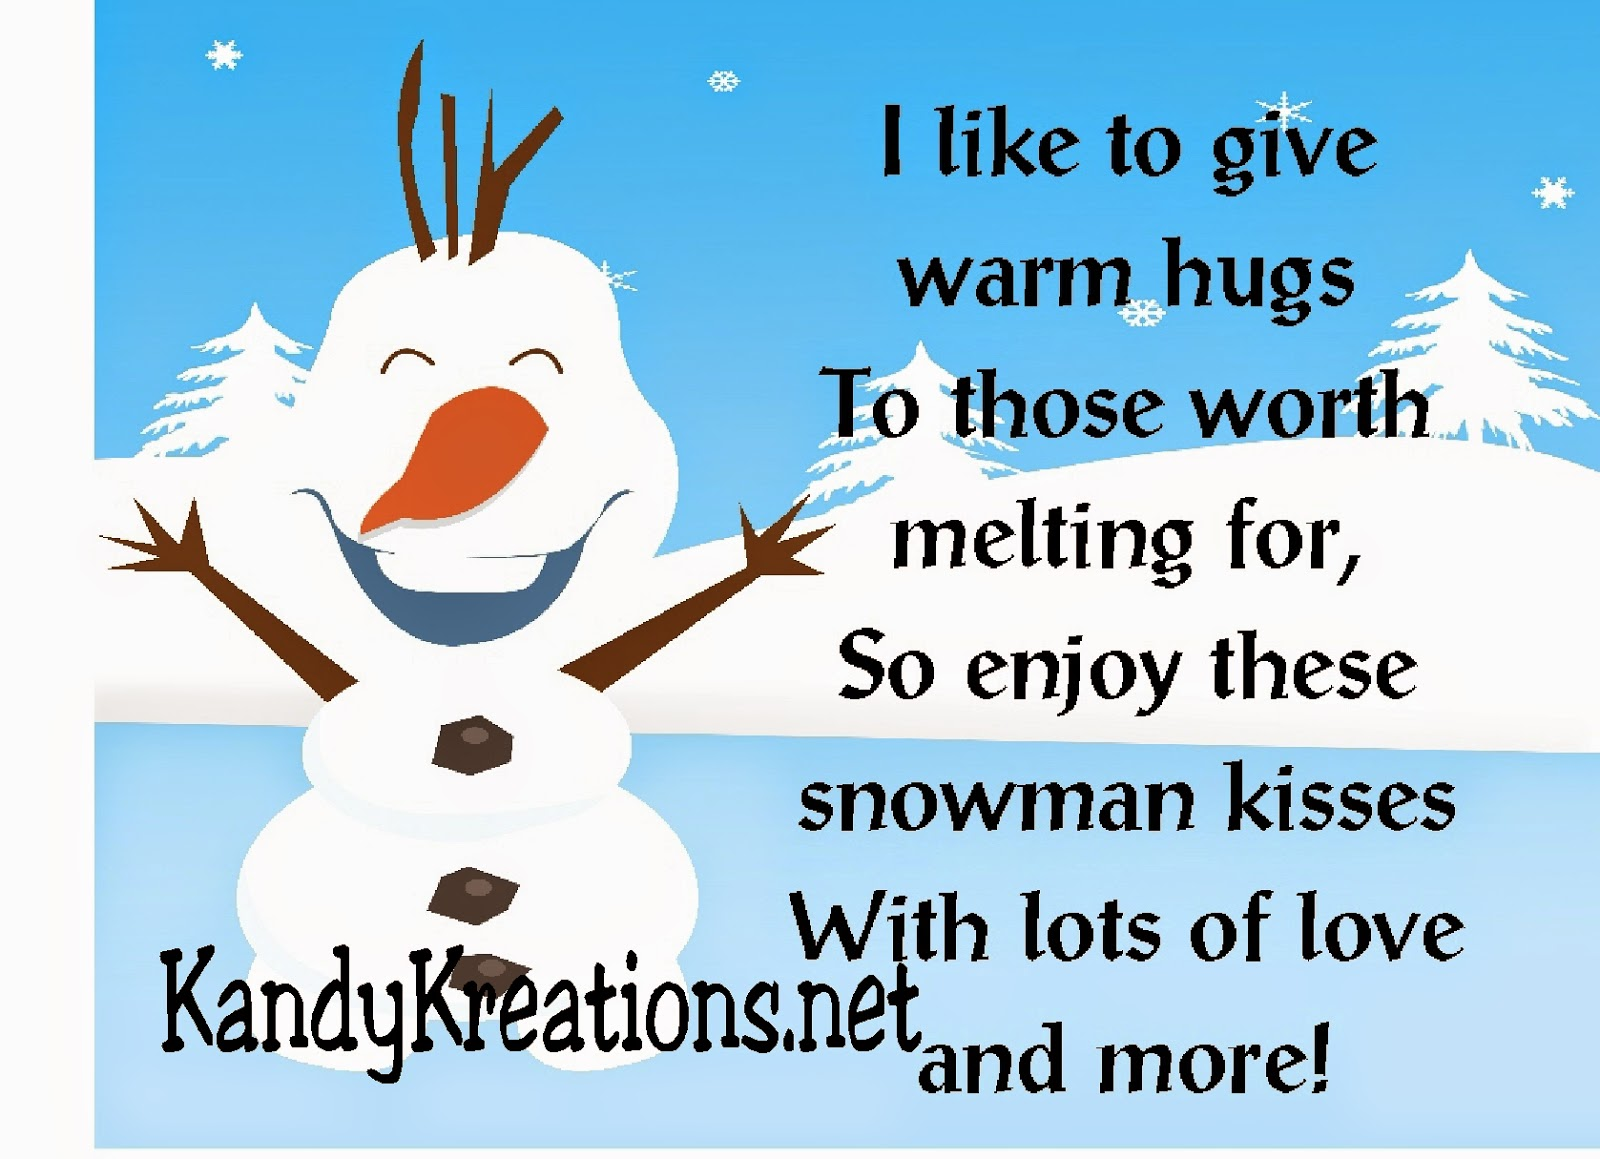 I like to give warm hugs, to those worth melting for, so enjoy these snowman kisses, with lots of love and more.